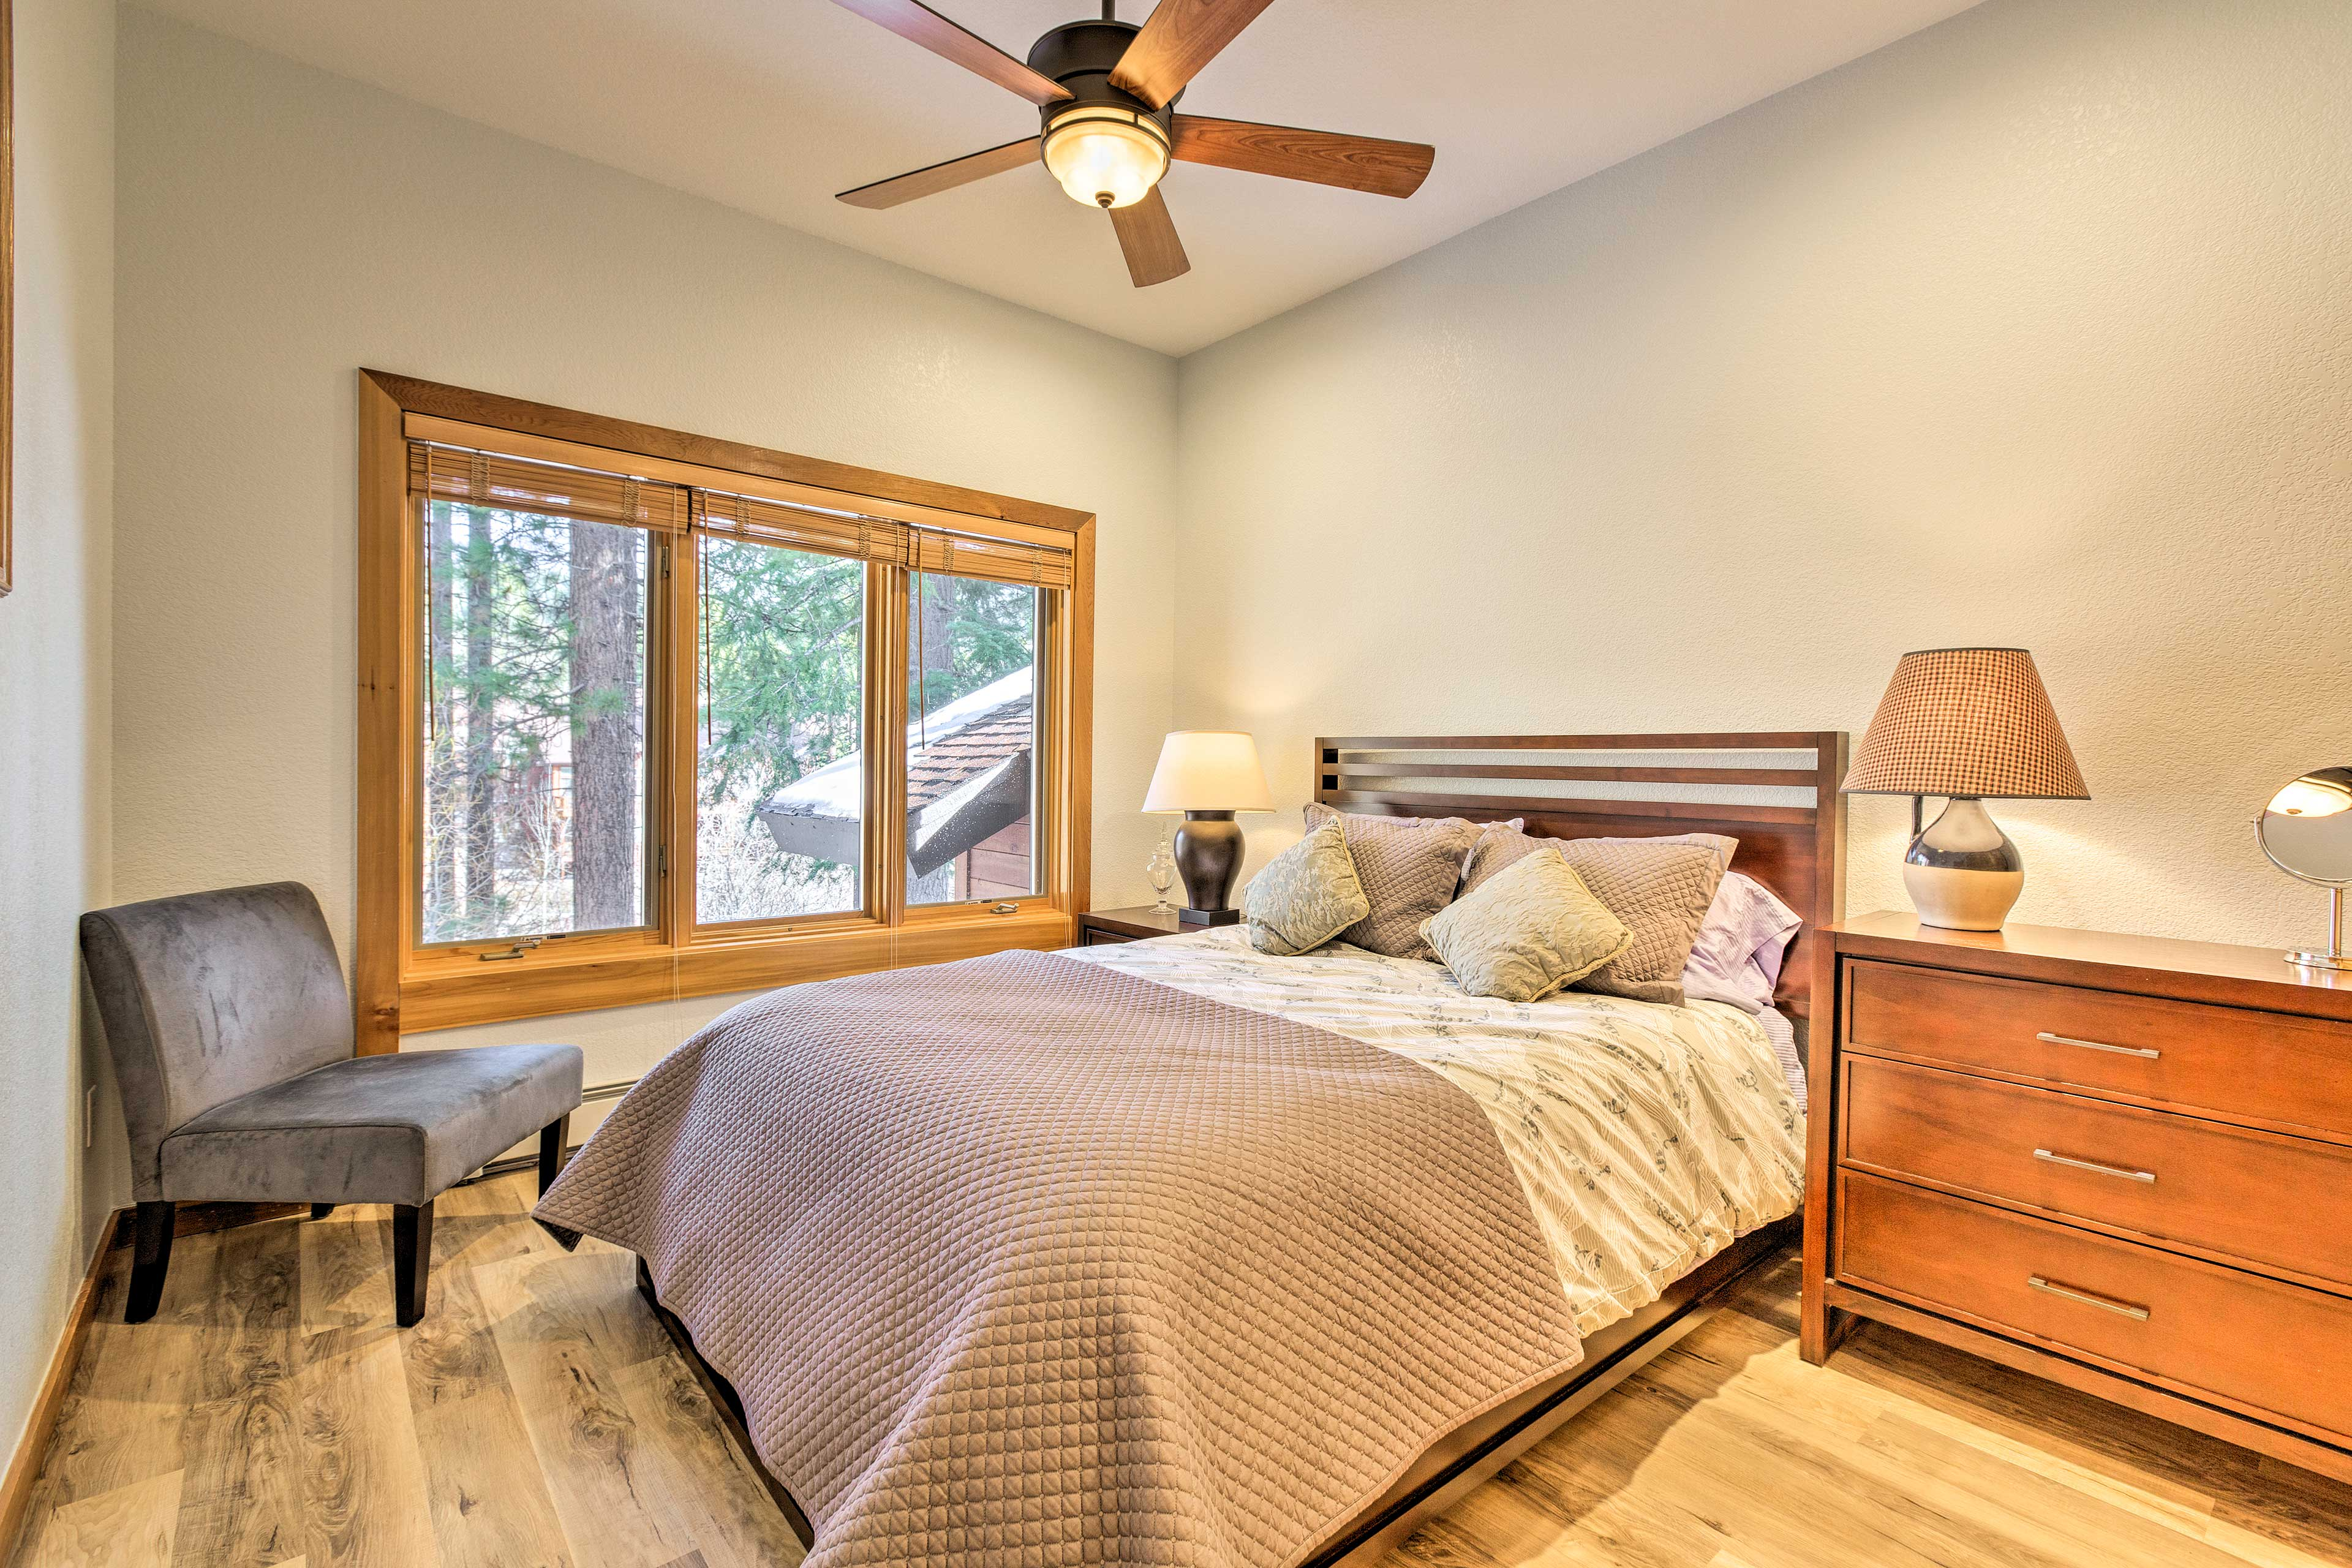 Two guests can share the comfort of this plush queen bed.